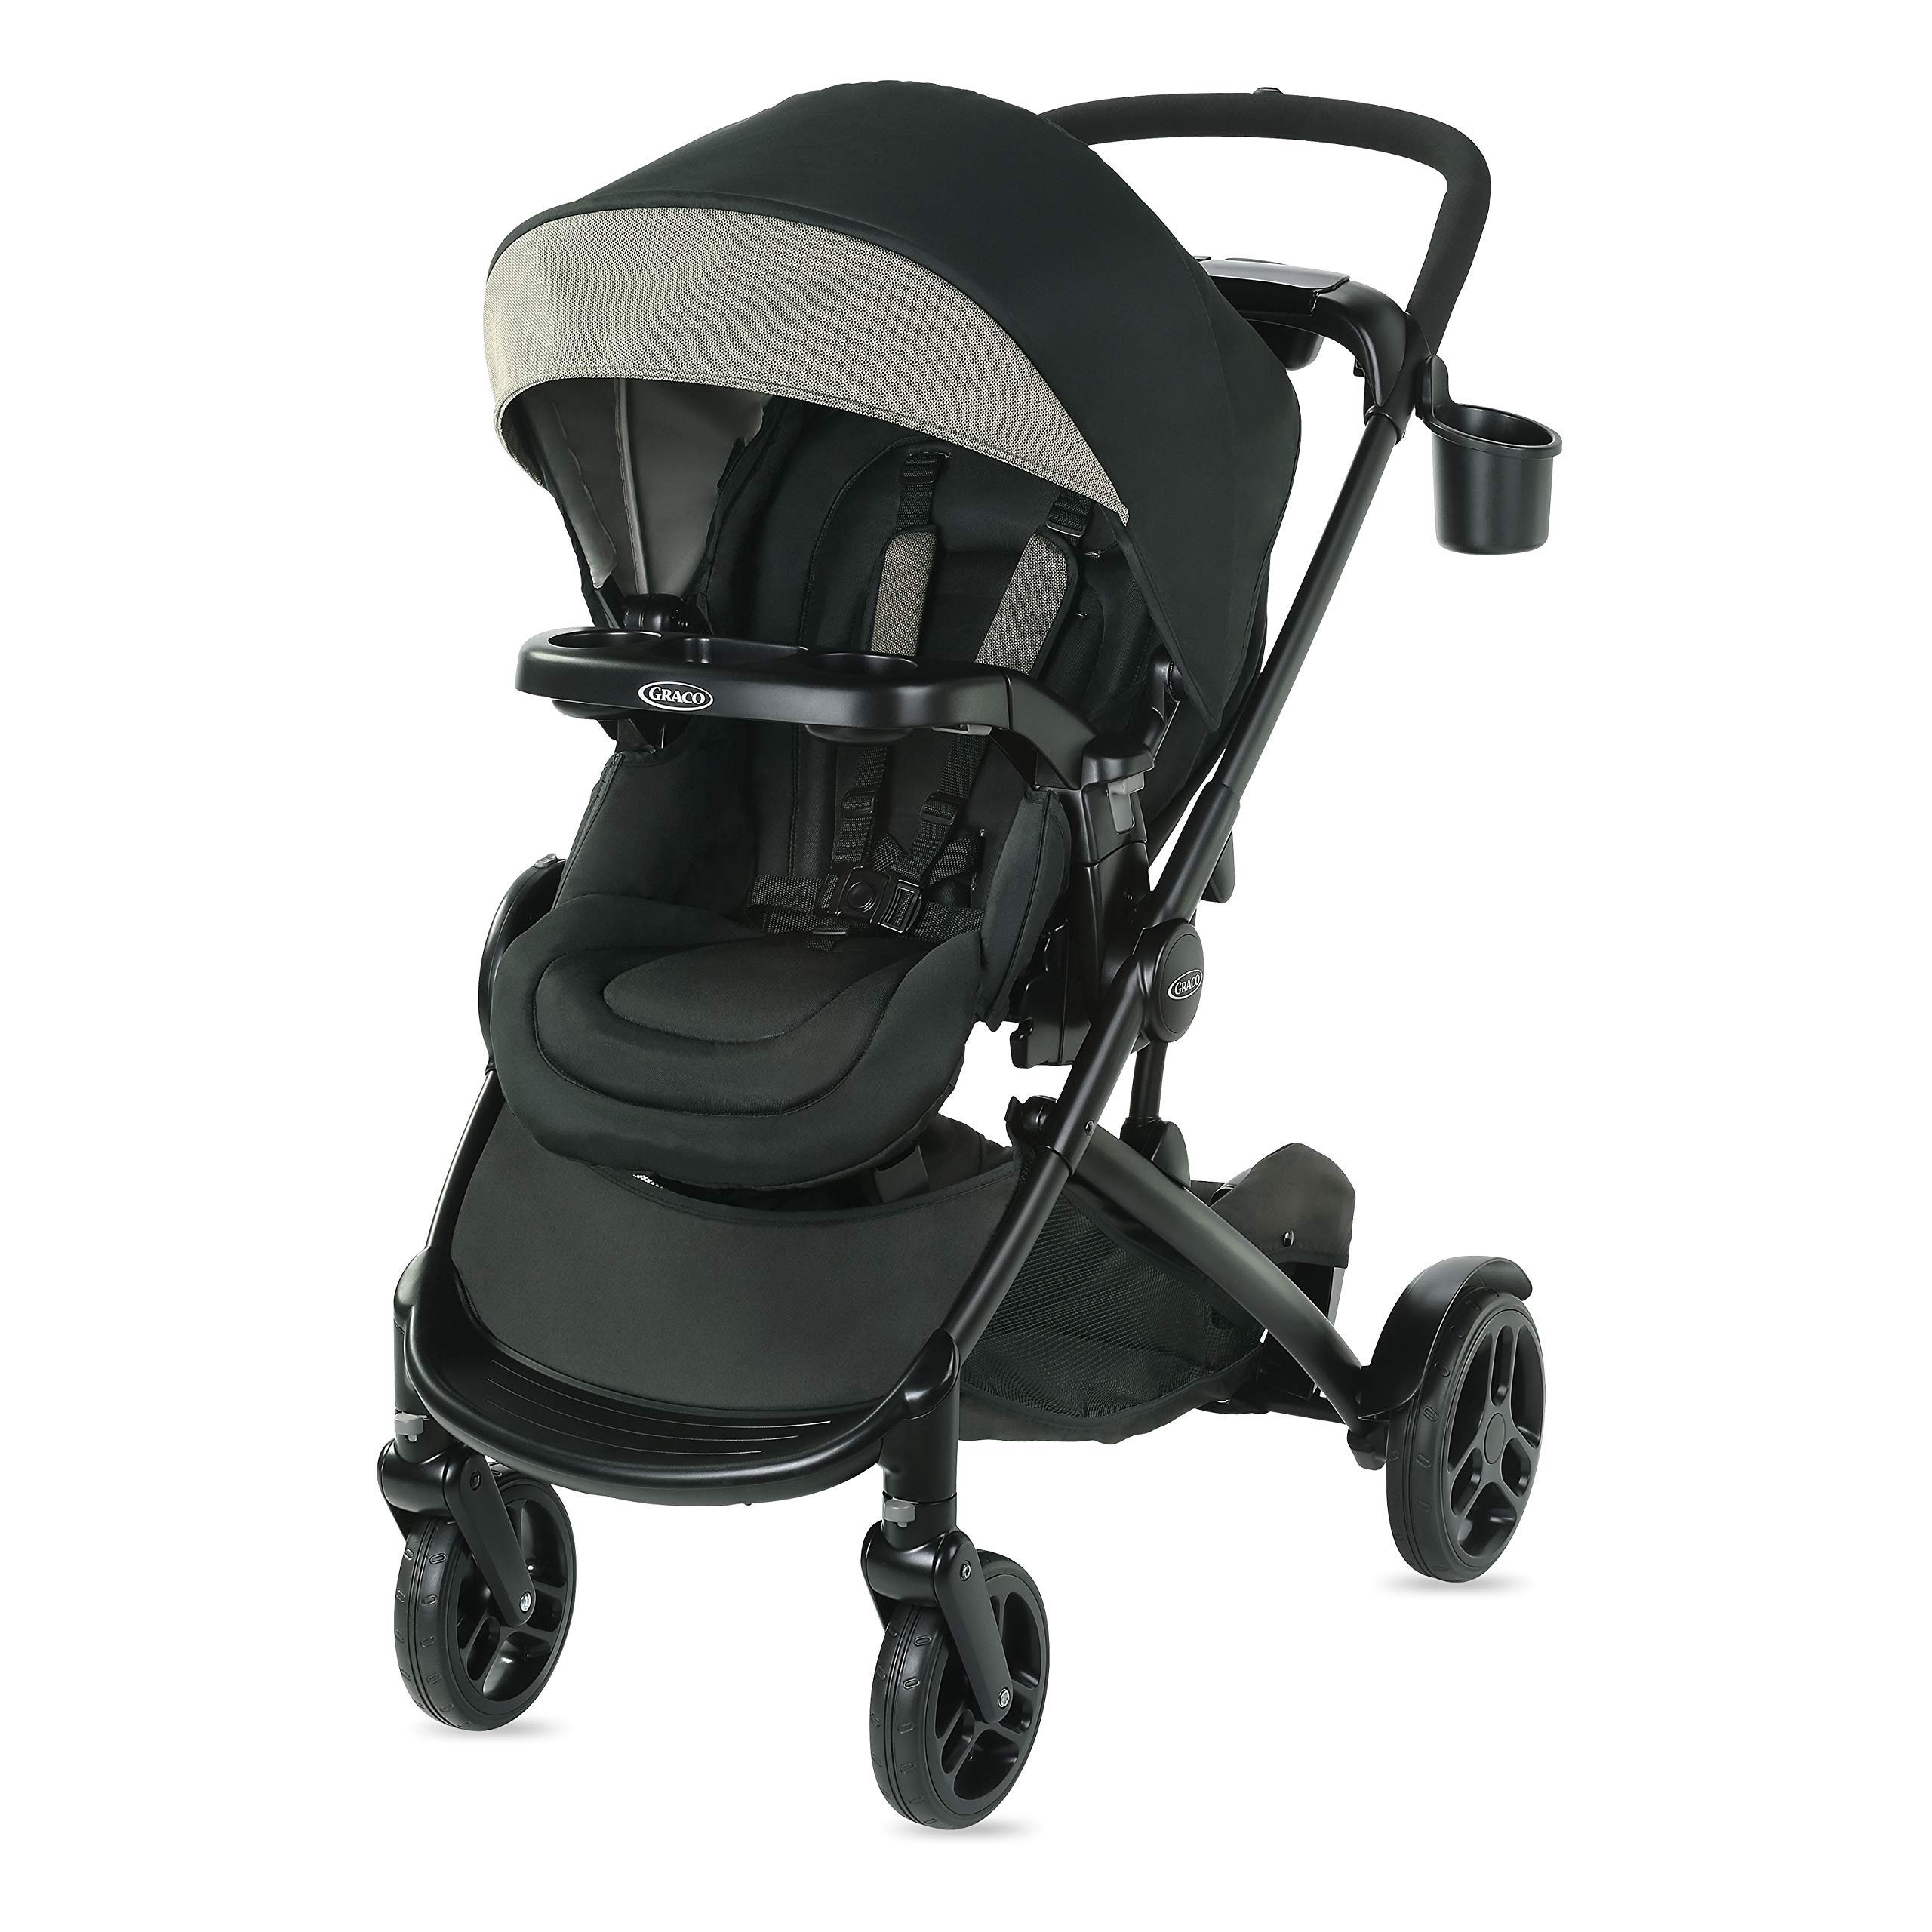 Graco Modes2Grow Stroller, Haven by Graco